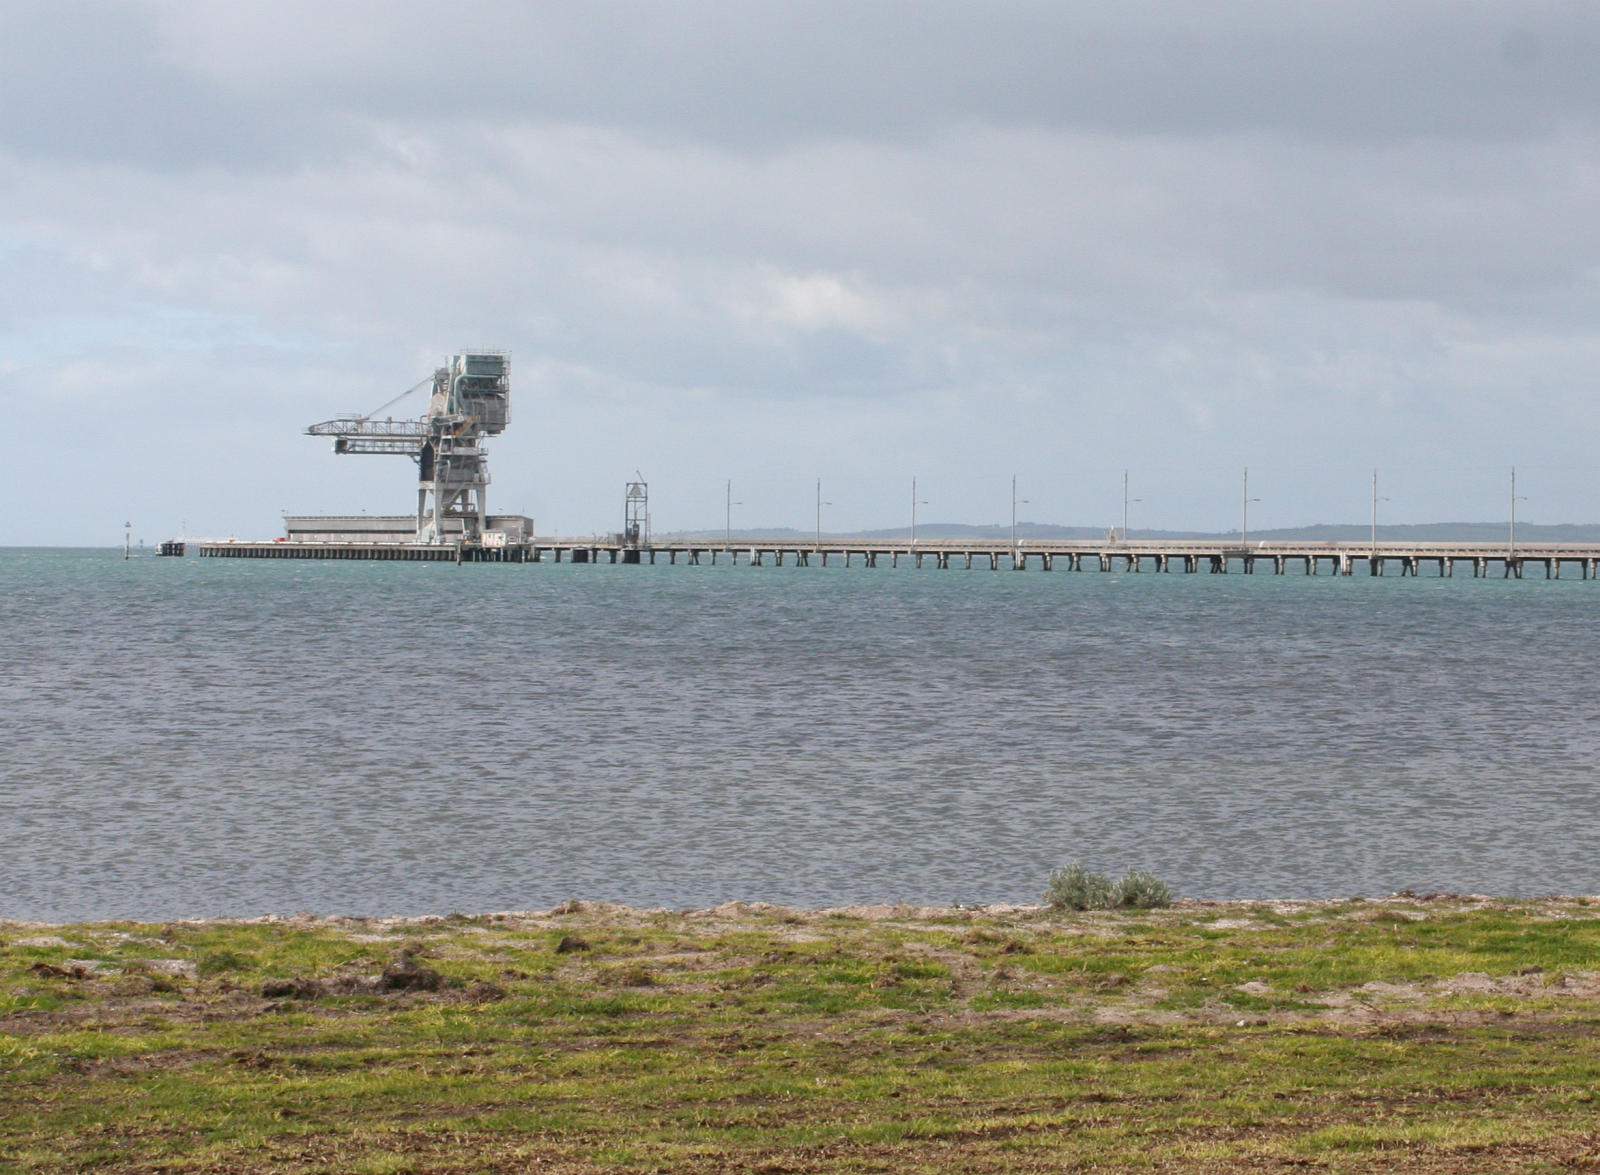 Point Henry smelter - Wikipedia